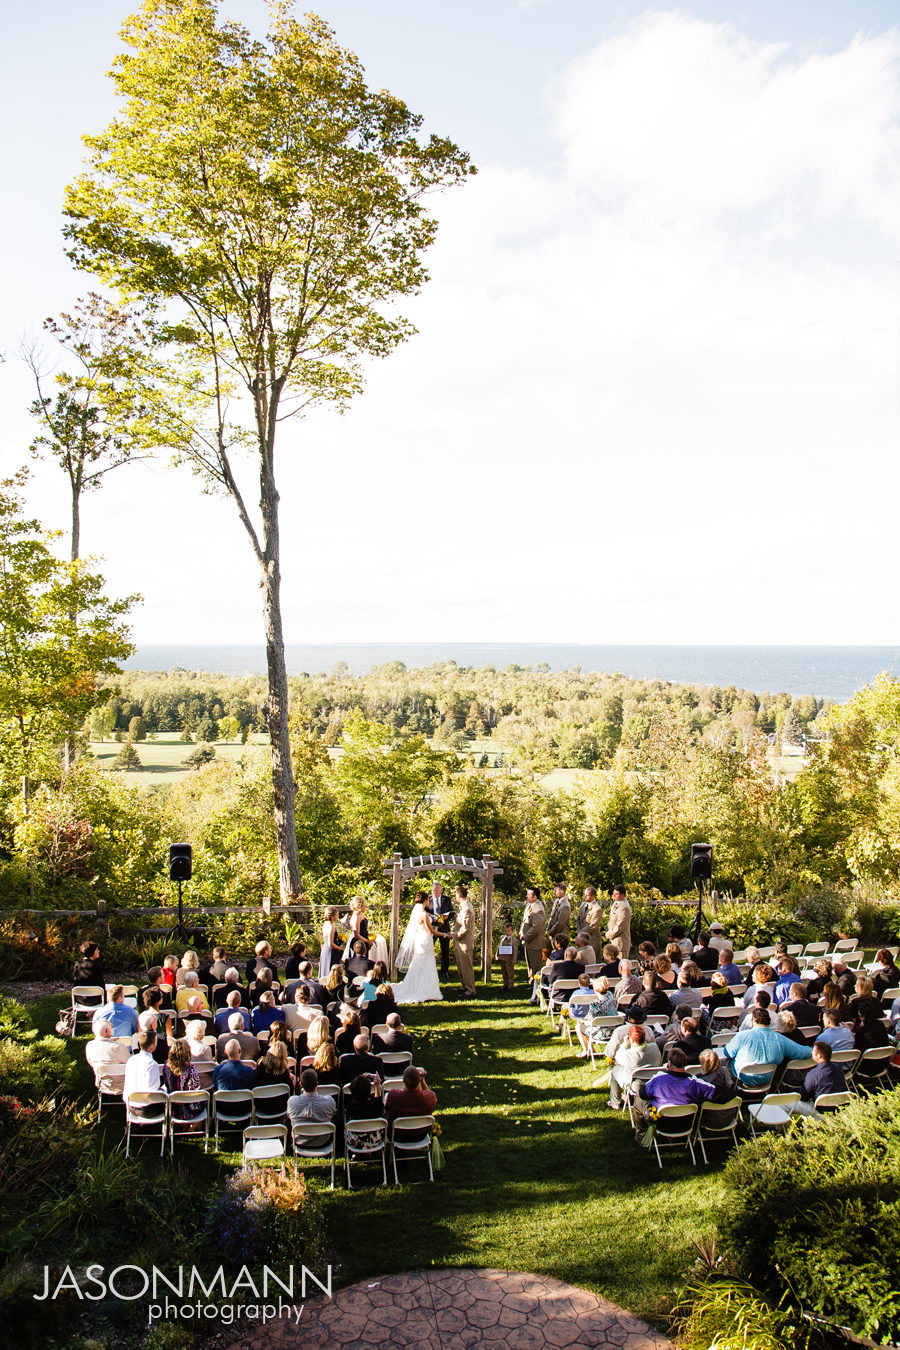 Jason Mann Photography - Door County Wedding at The Landmark Resort